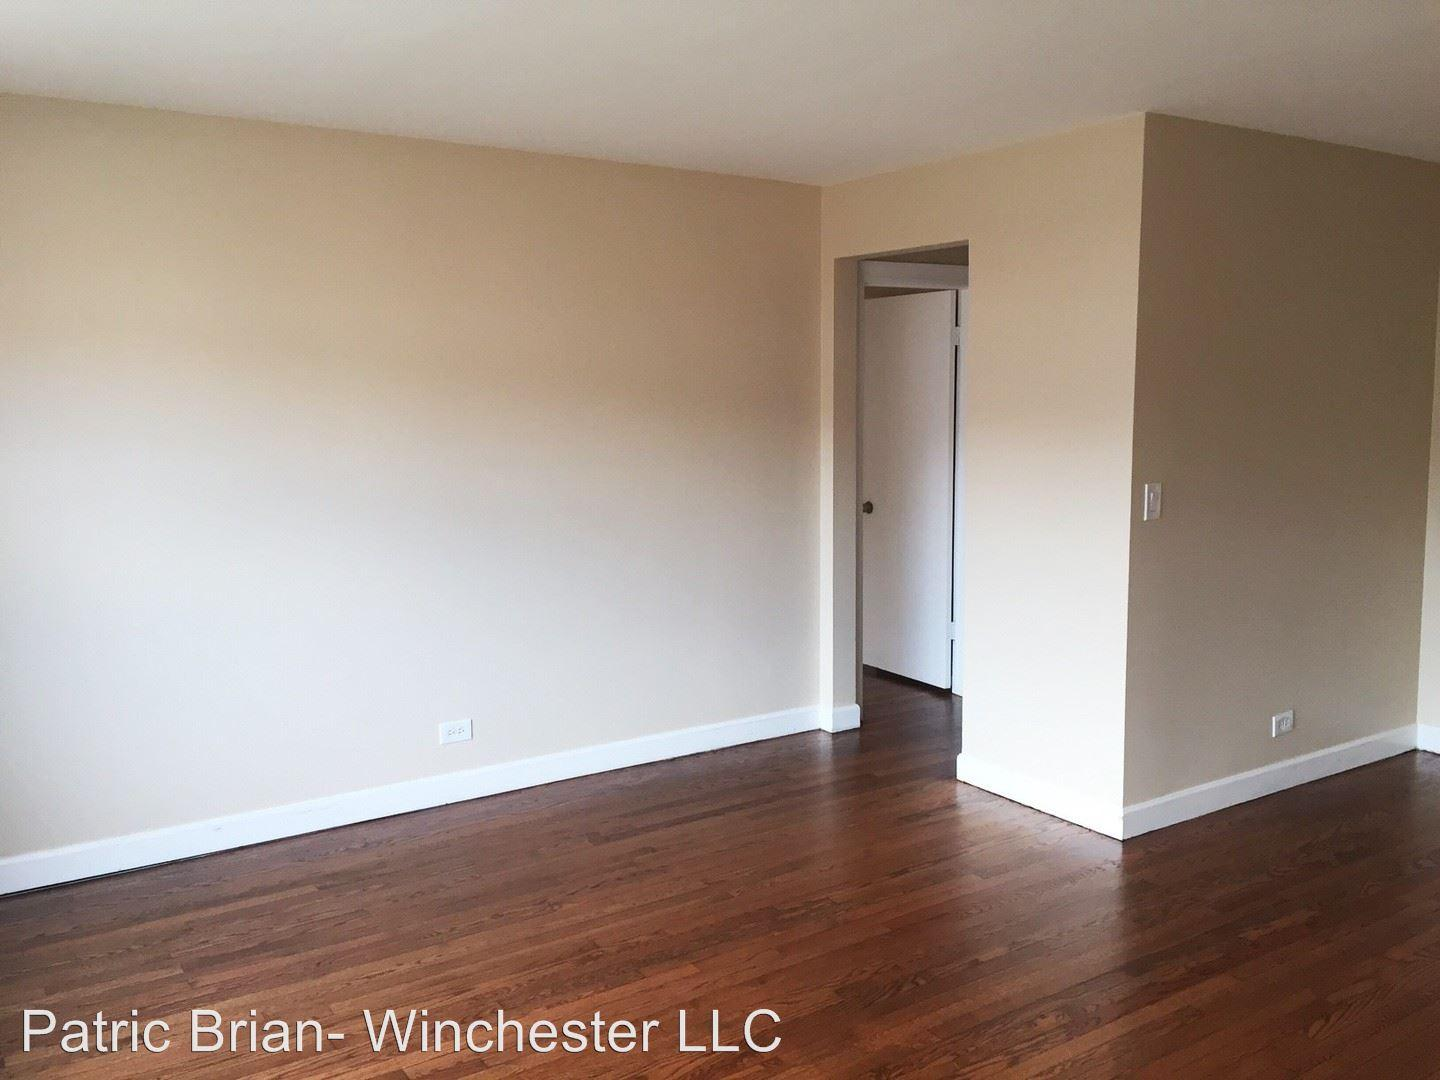 7431 N. Winchester 204 photo #1